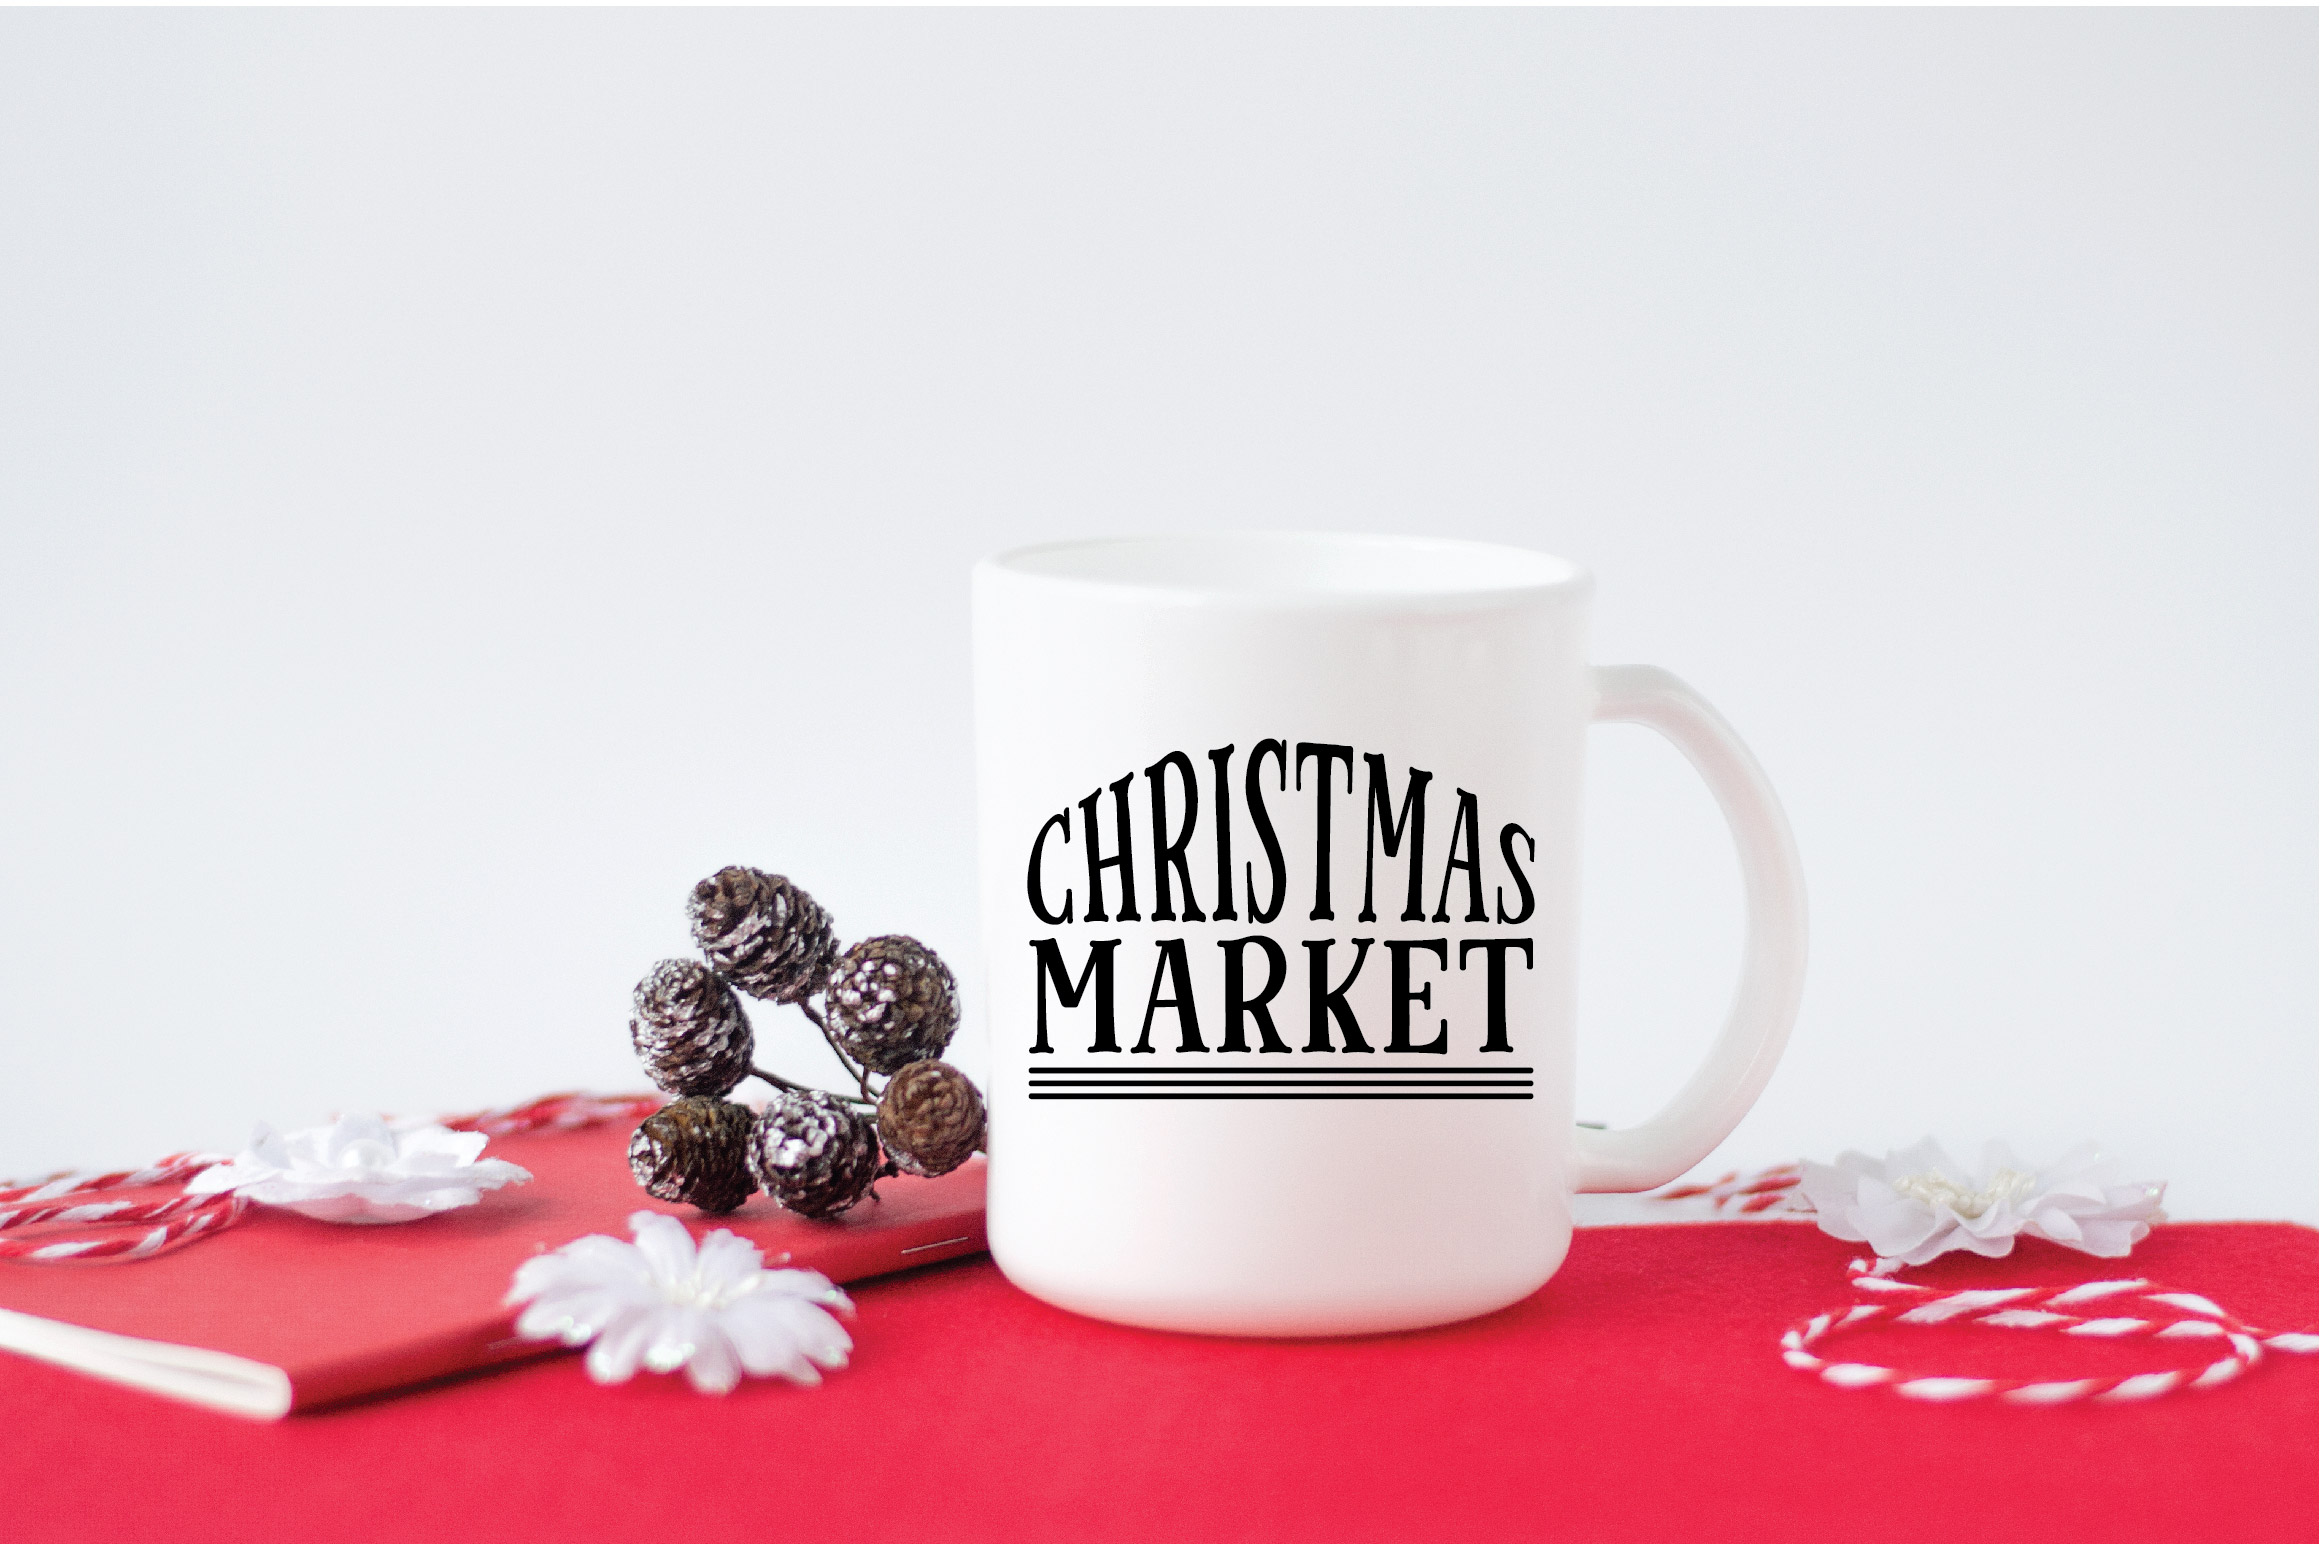 Christmas SVG Cut File - Christmas Market SVG DXF PNG EPS example image 5